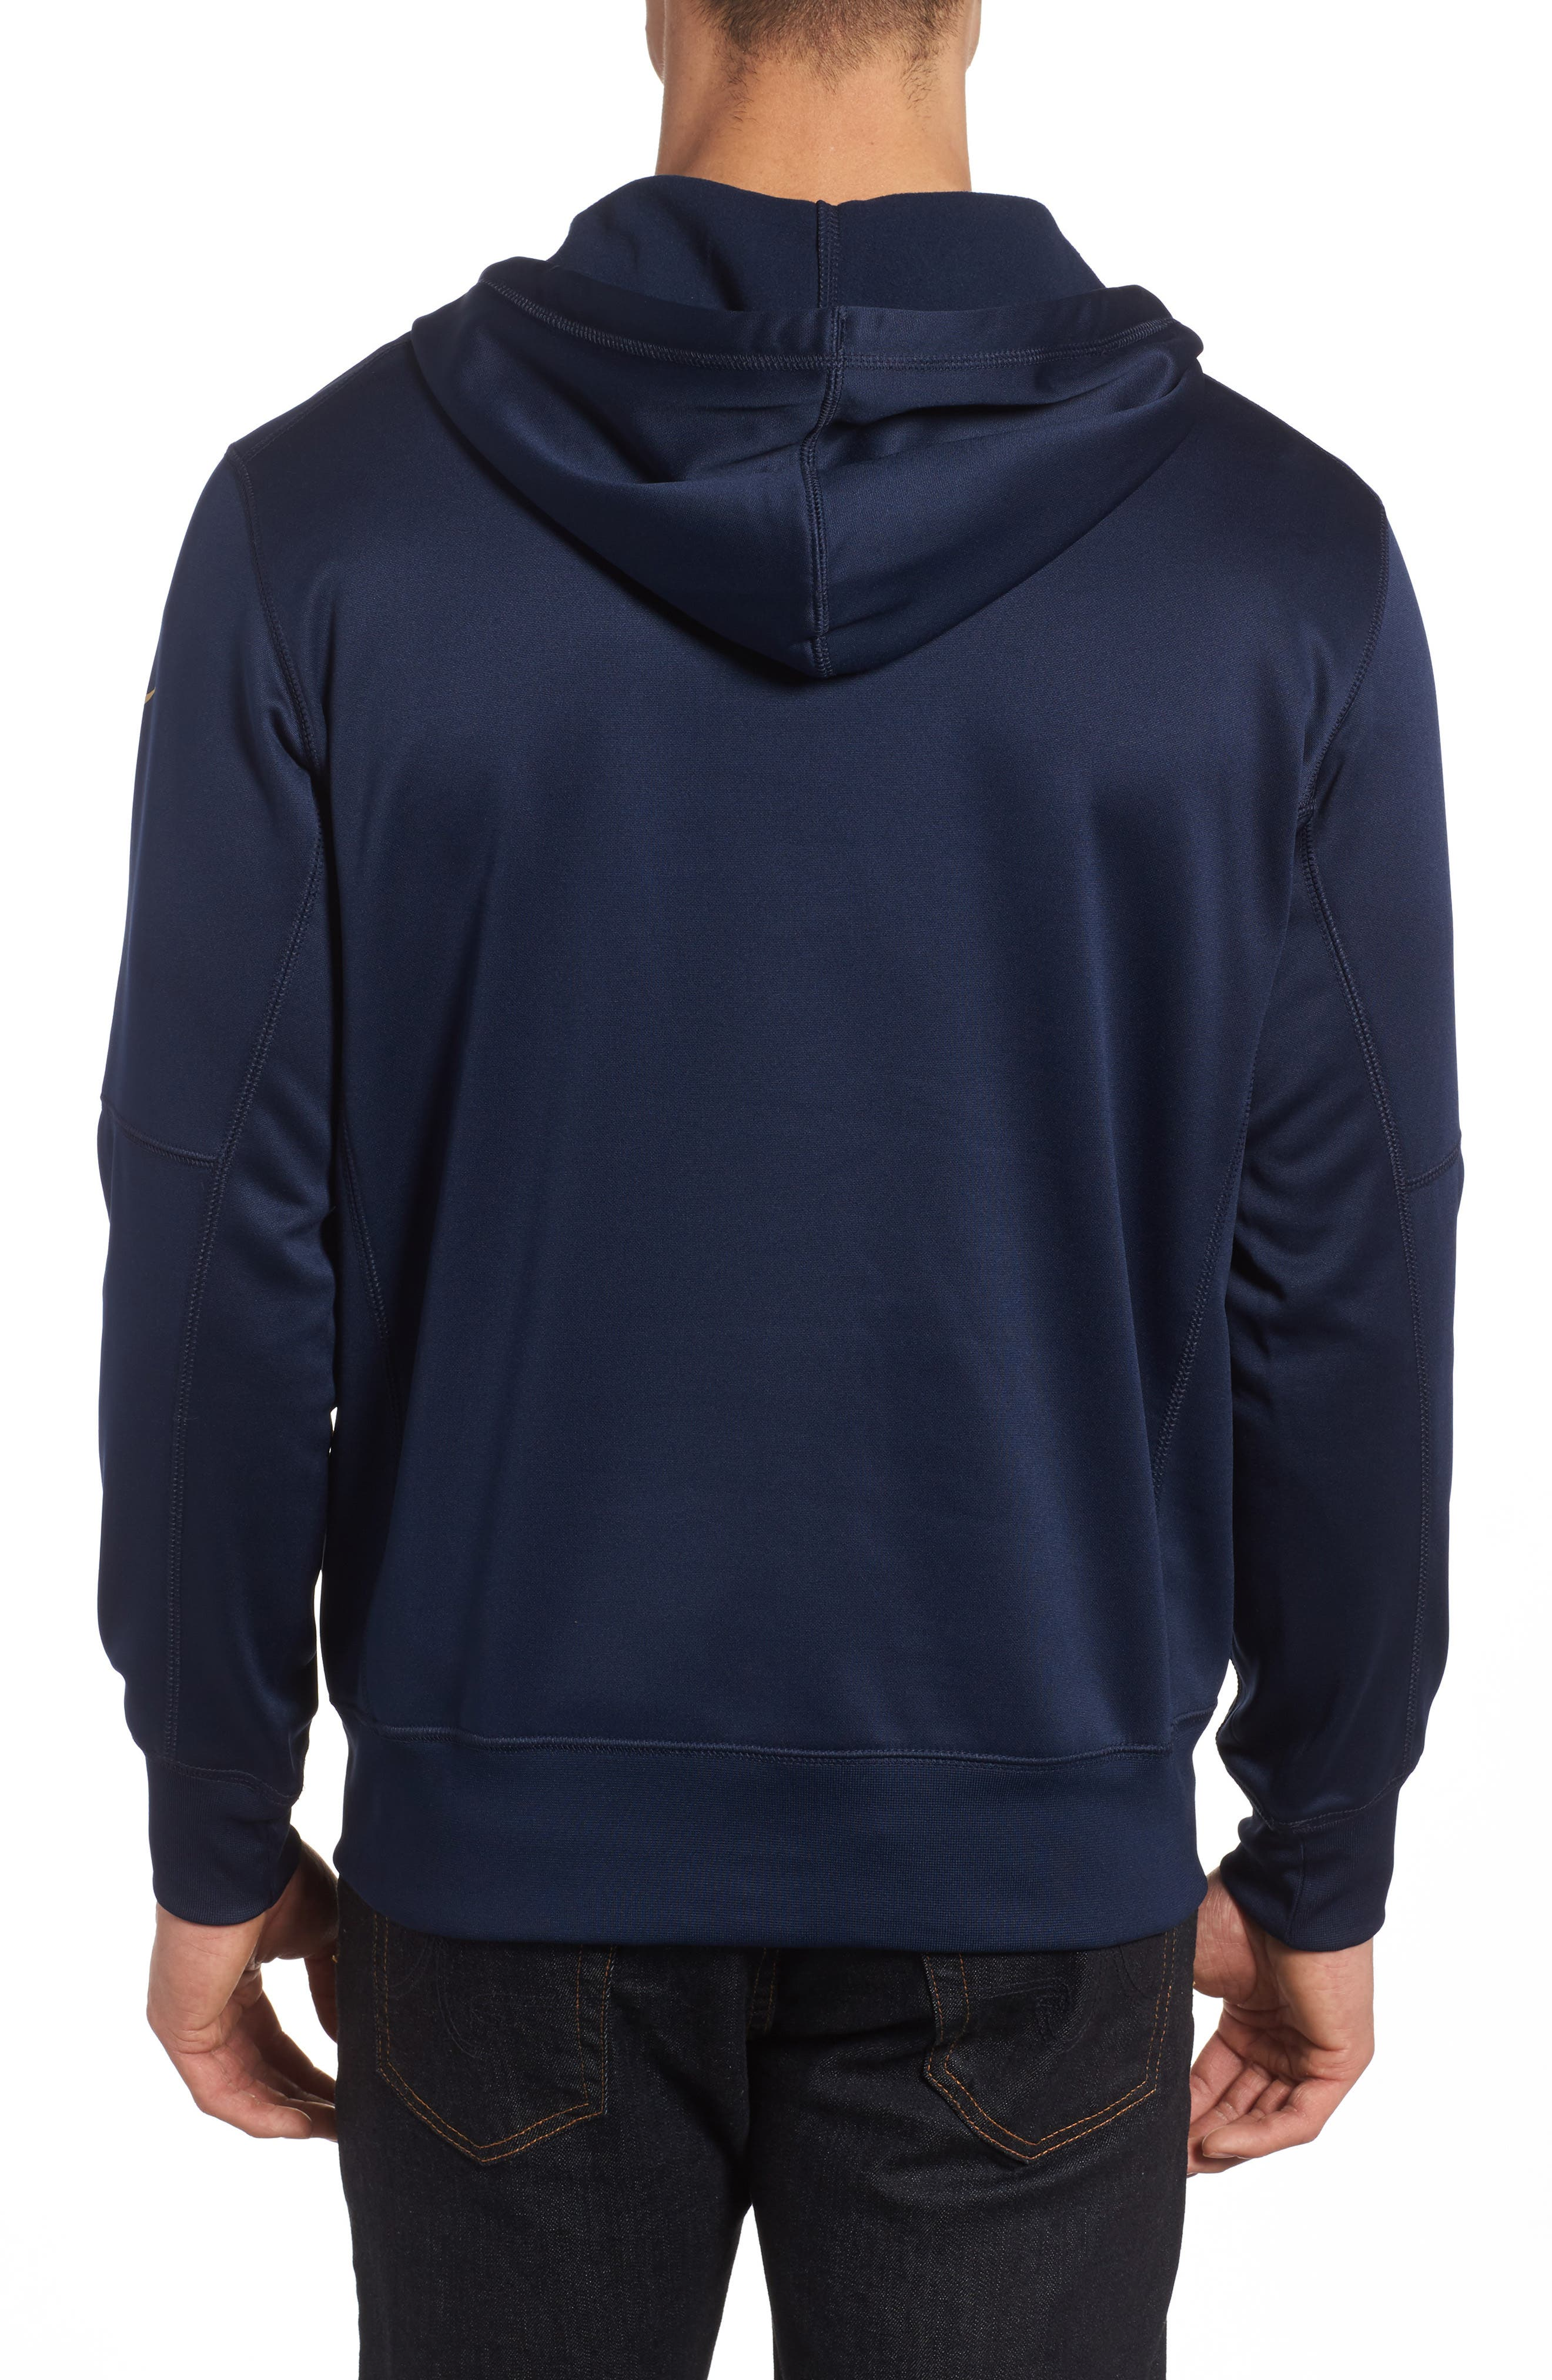 Therma-FIT NFL Graphic Zip Hoodie,                             Alternate thumbnail 12, color,